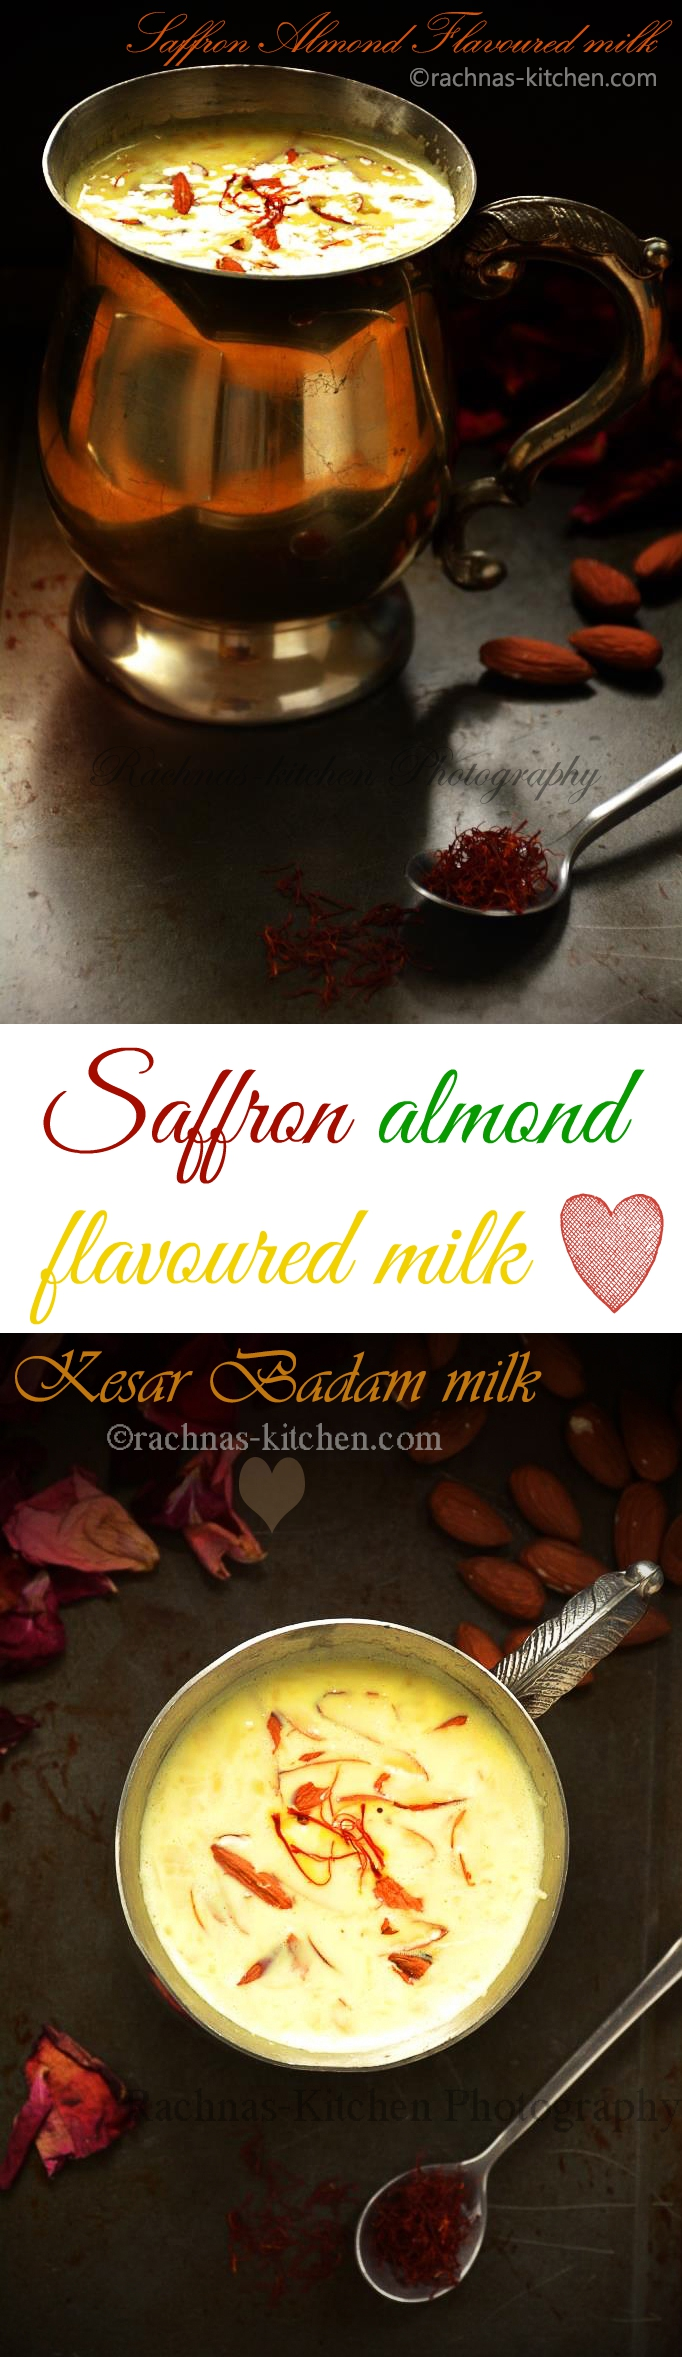 almond saffron milk recipe